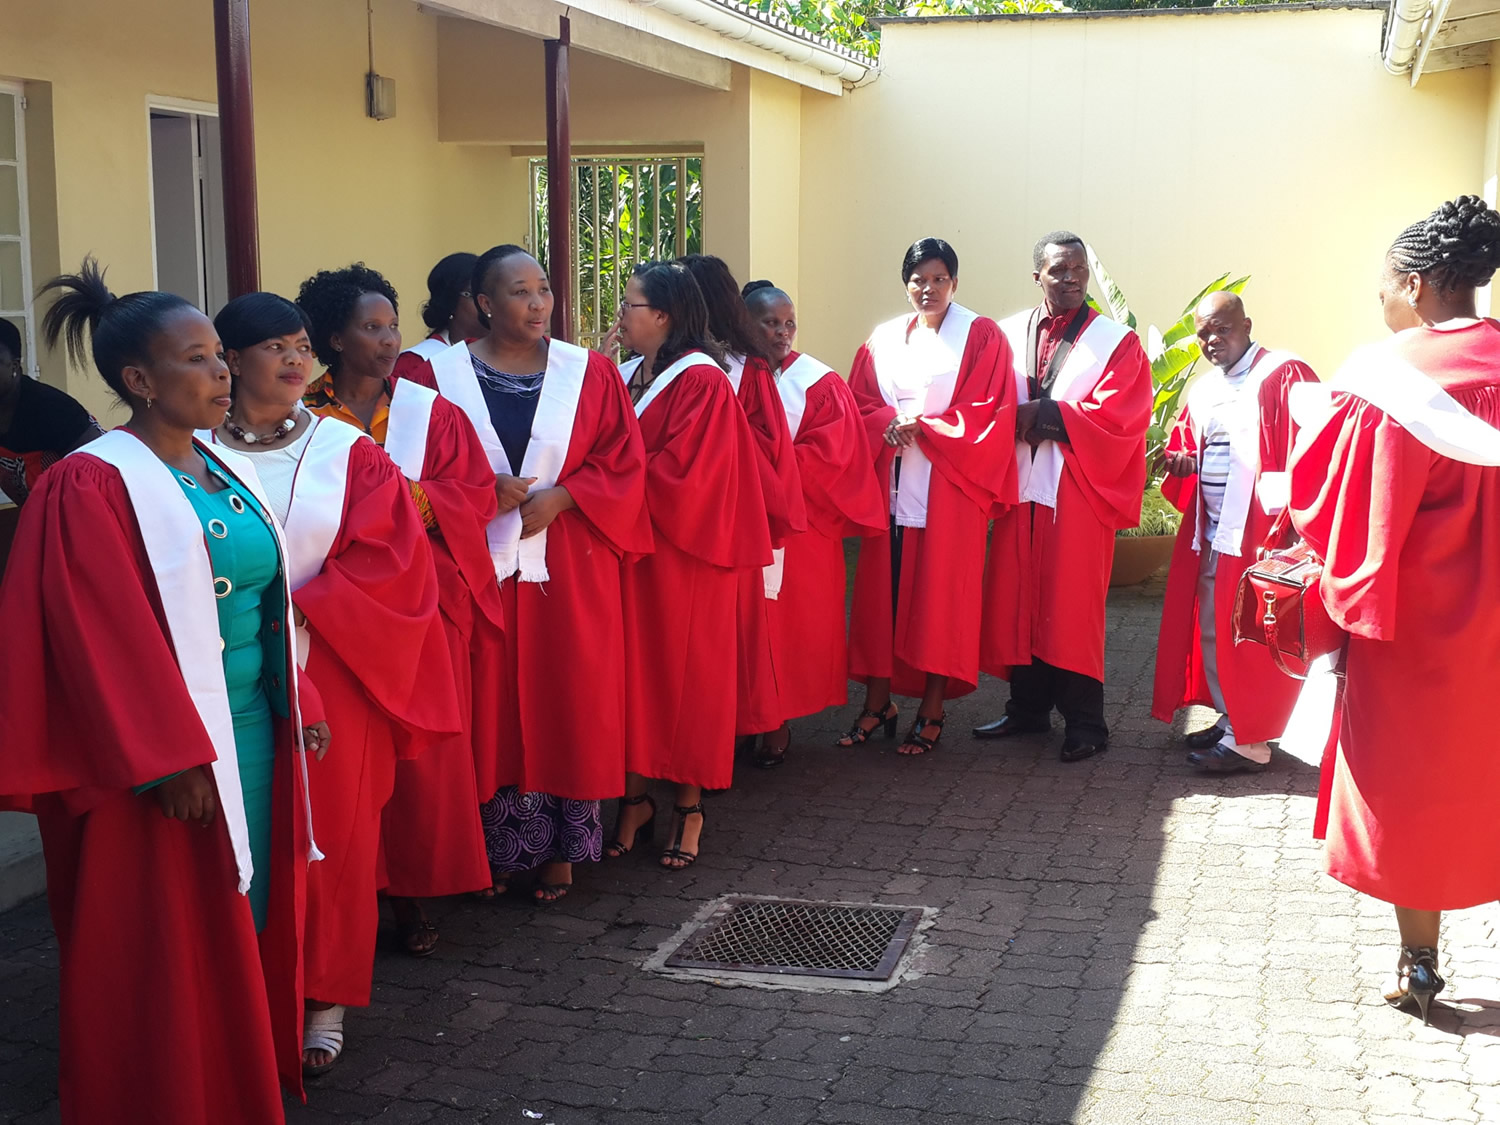 picture of graduates from the training program